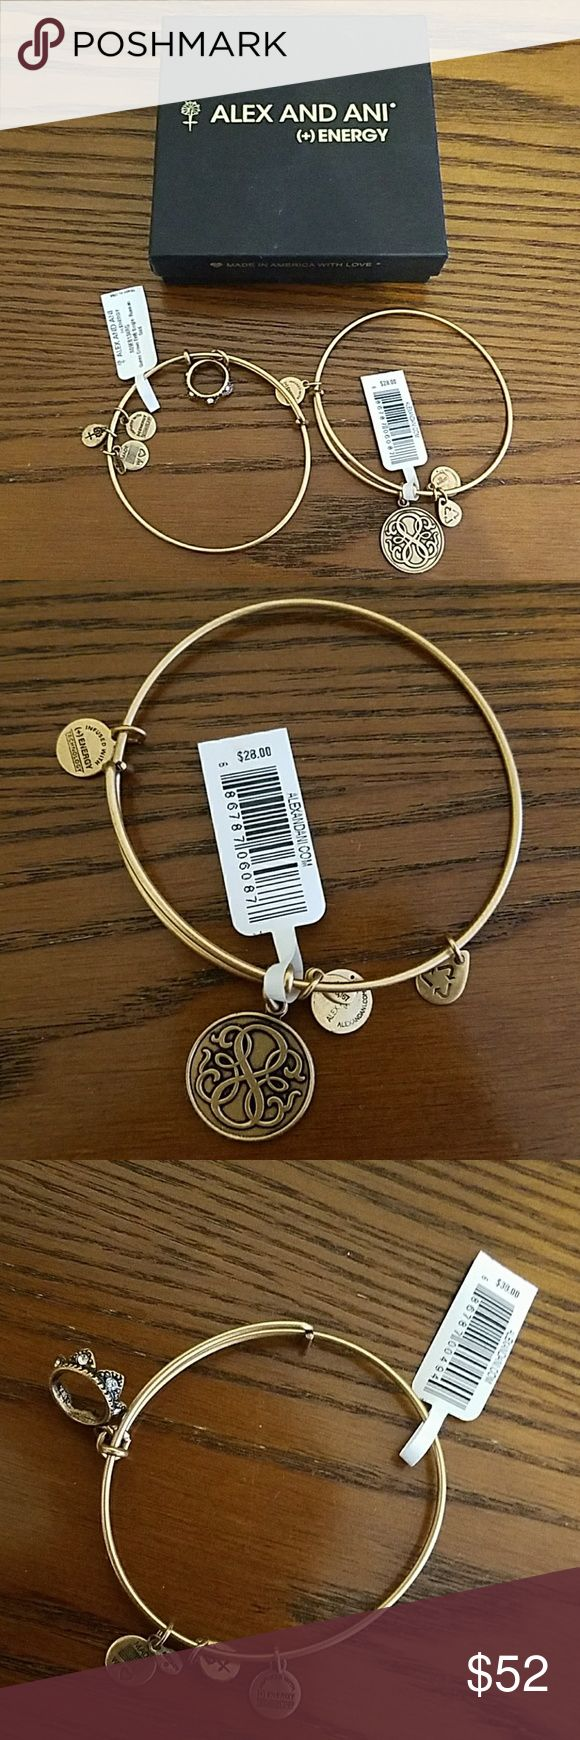 NWT Alex And Ani Bogo Set of Bangles with Box Buy 1 get 1 50% off. Set of 2 NWT Alex and Ani Russian Gold Bangles with original box and care card. 100% Authentic. Path of Life- $28. Queen Crown- $38. No trades. Smoke and pet free home. Reasonable offers accepted. Thanks for visiting my closet! Crown sold separately is $30. Path of Life sold separately is $22. Alex & Ani Jewelry Bracelets